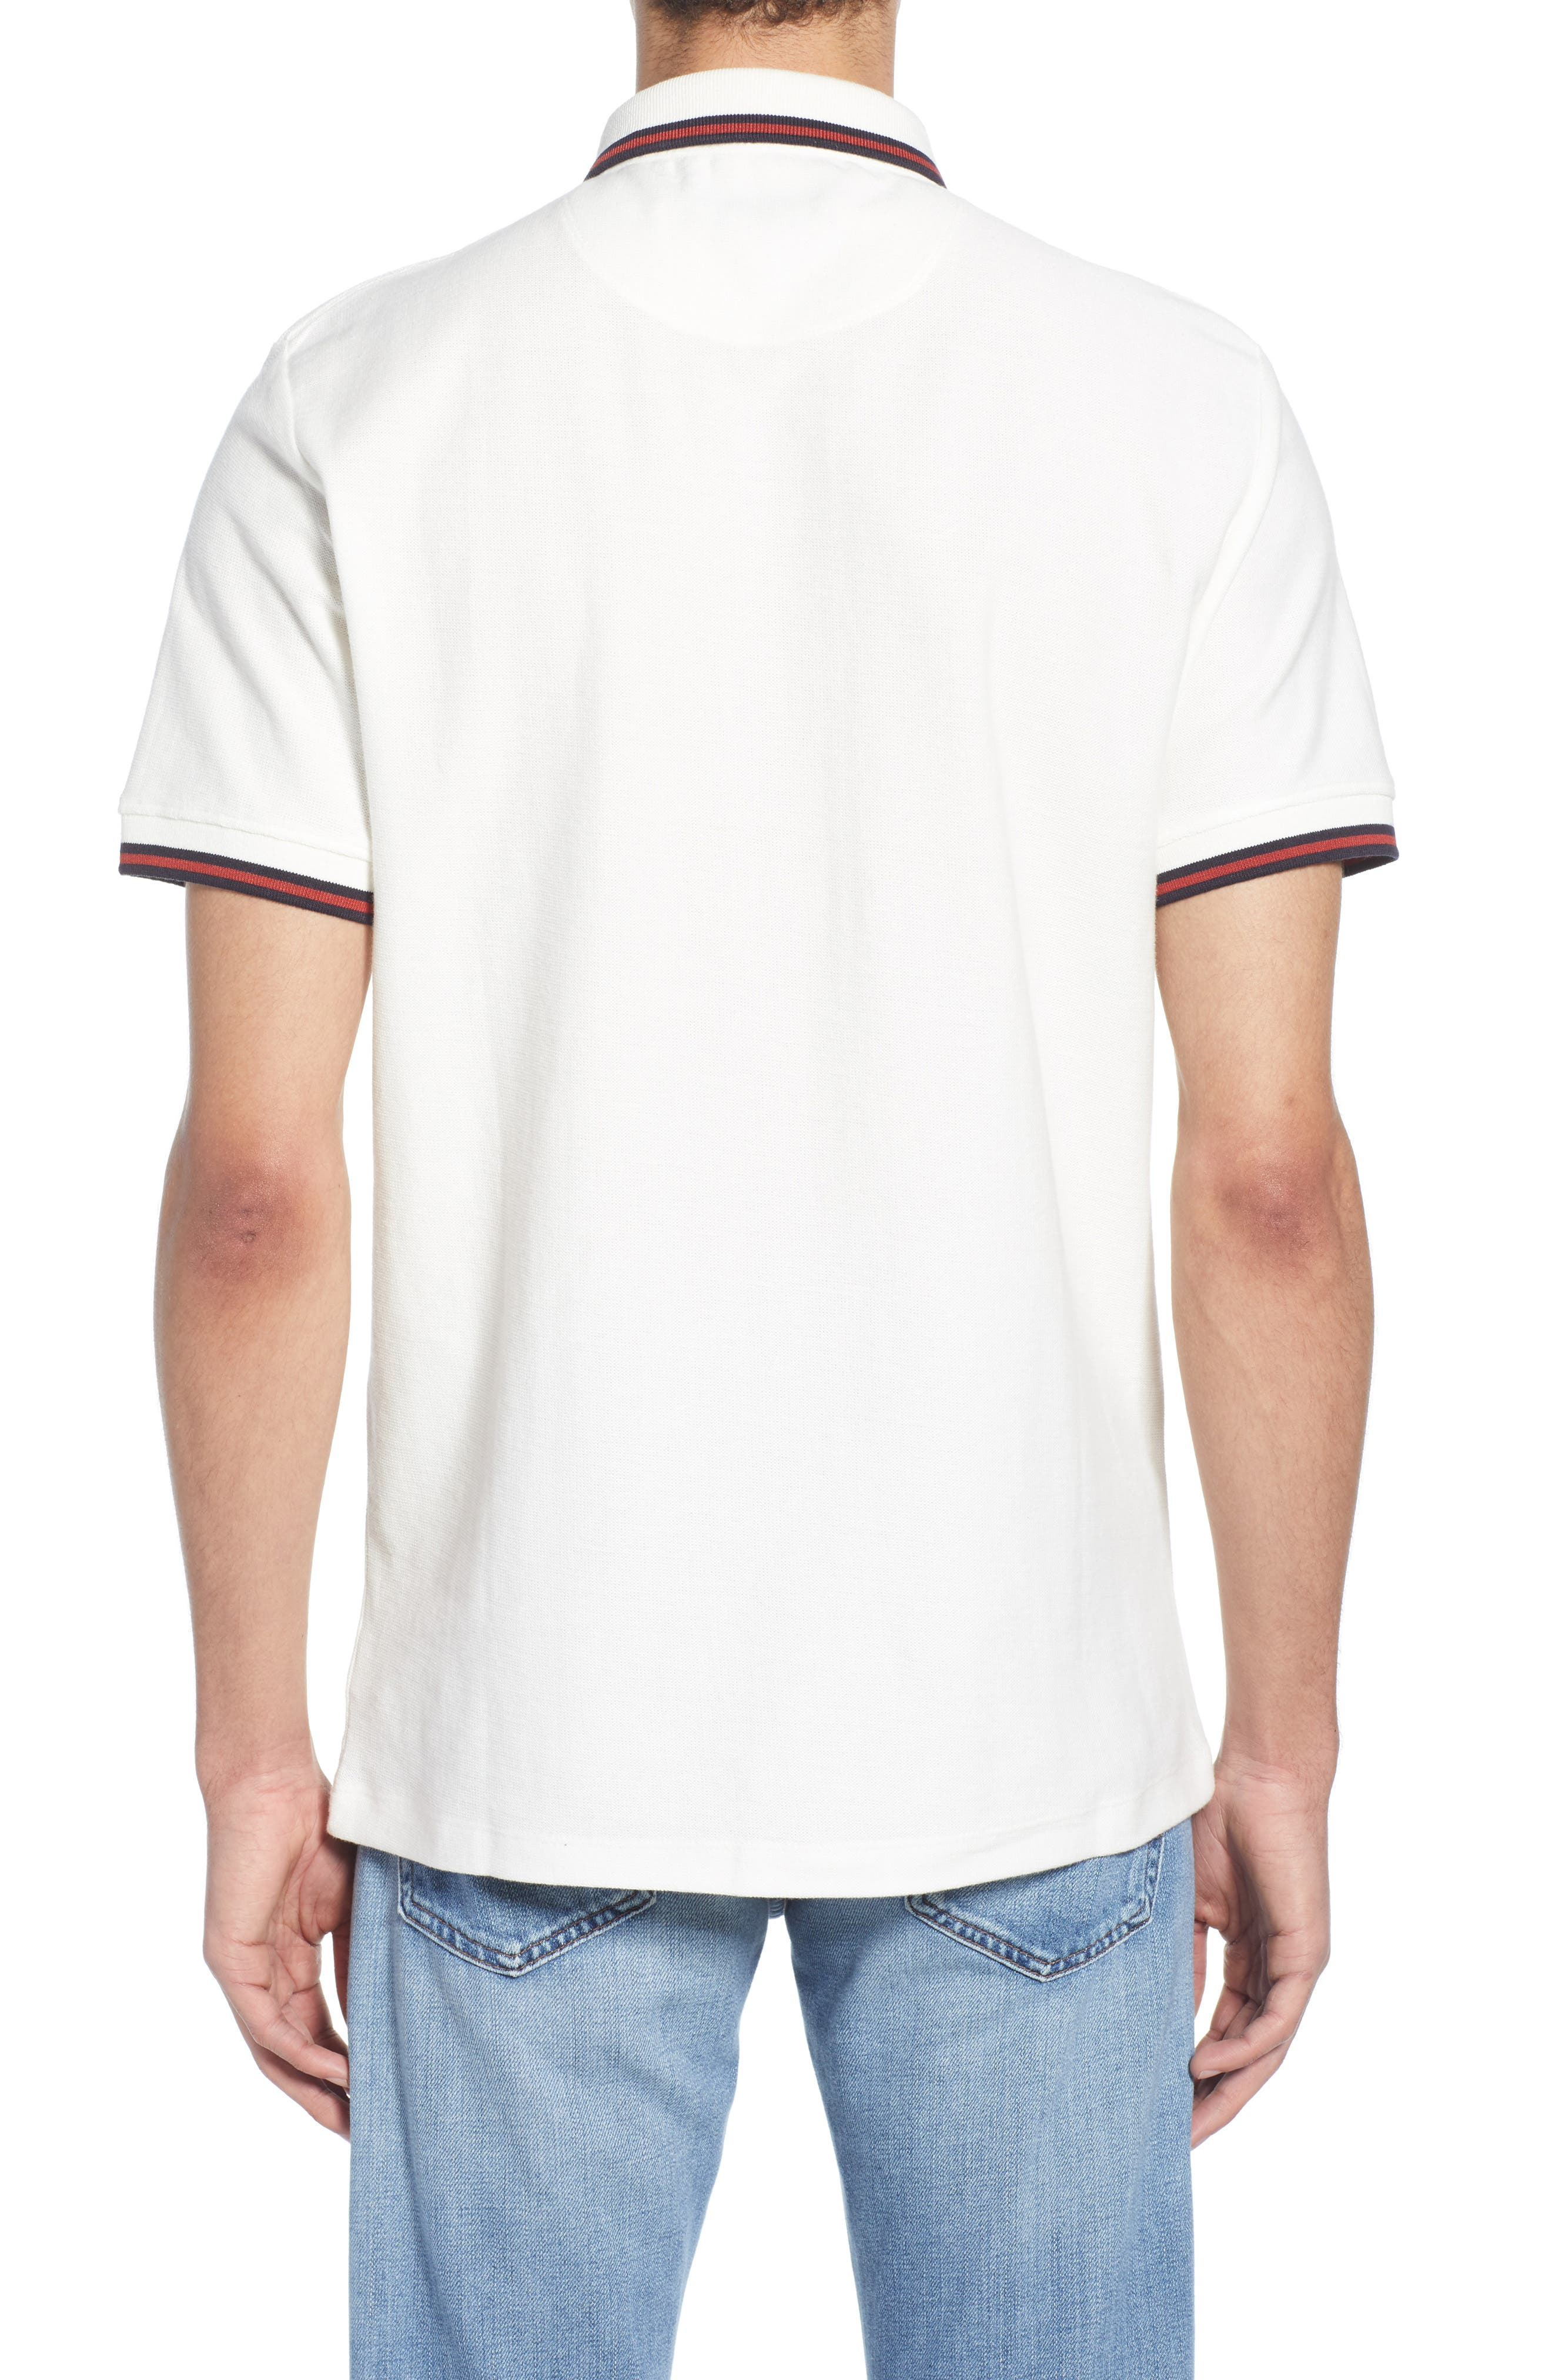 FRENCH CONNECTION, Dobby Jersey Regular Fit Polo, Alternate thumbnail 2, color, MILK BRICK RED